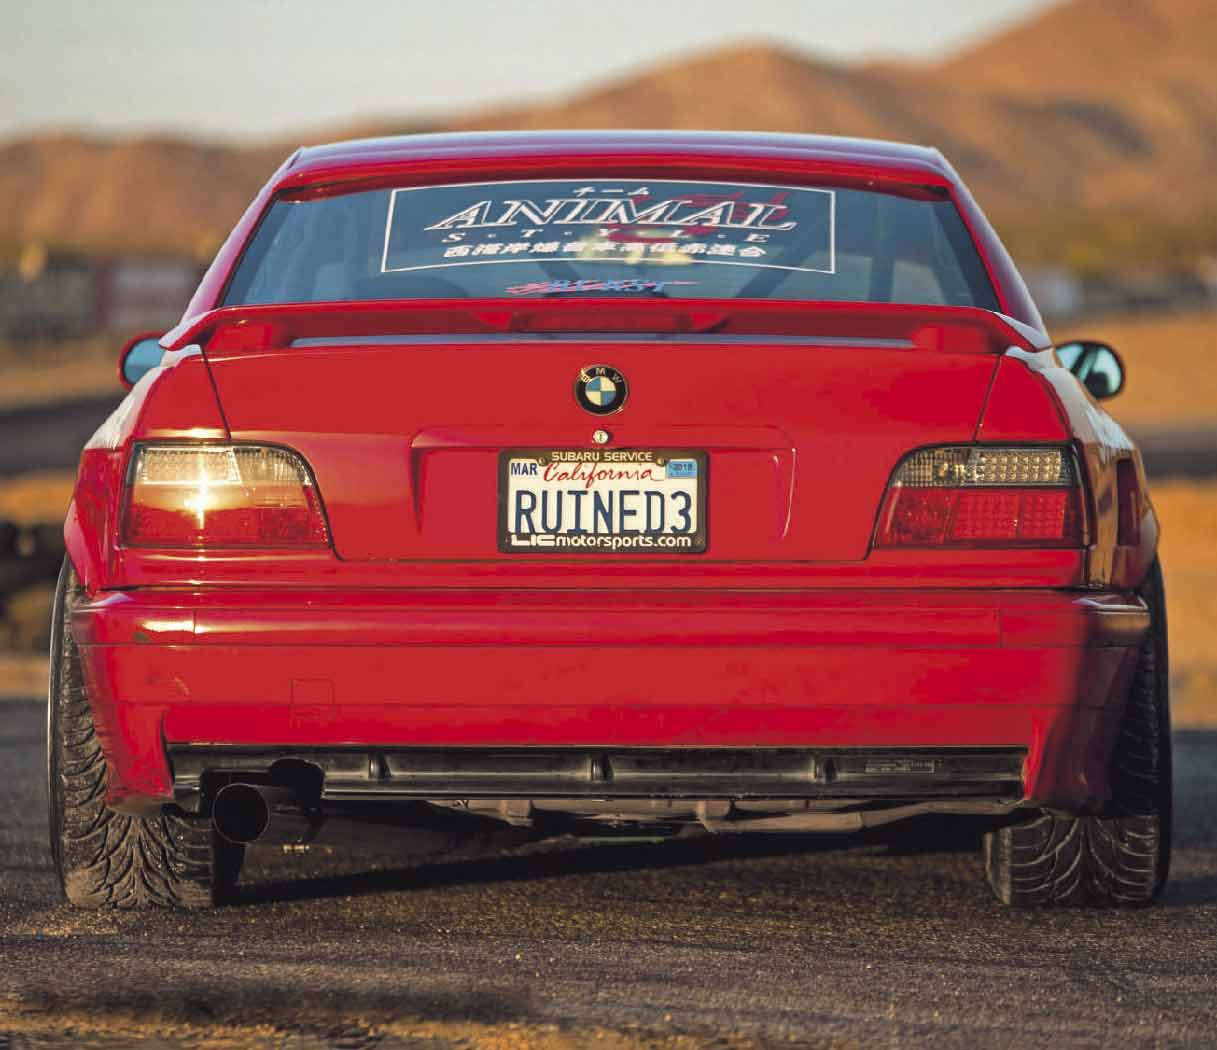 1JZ-swapped drift BMW M3 E36 - Drive-My Blogs - Drive